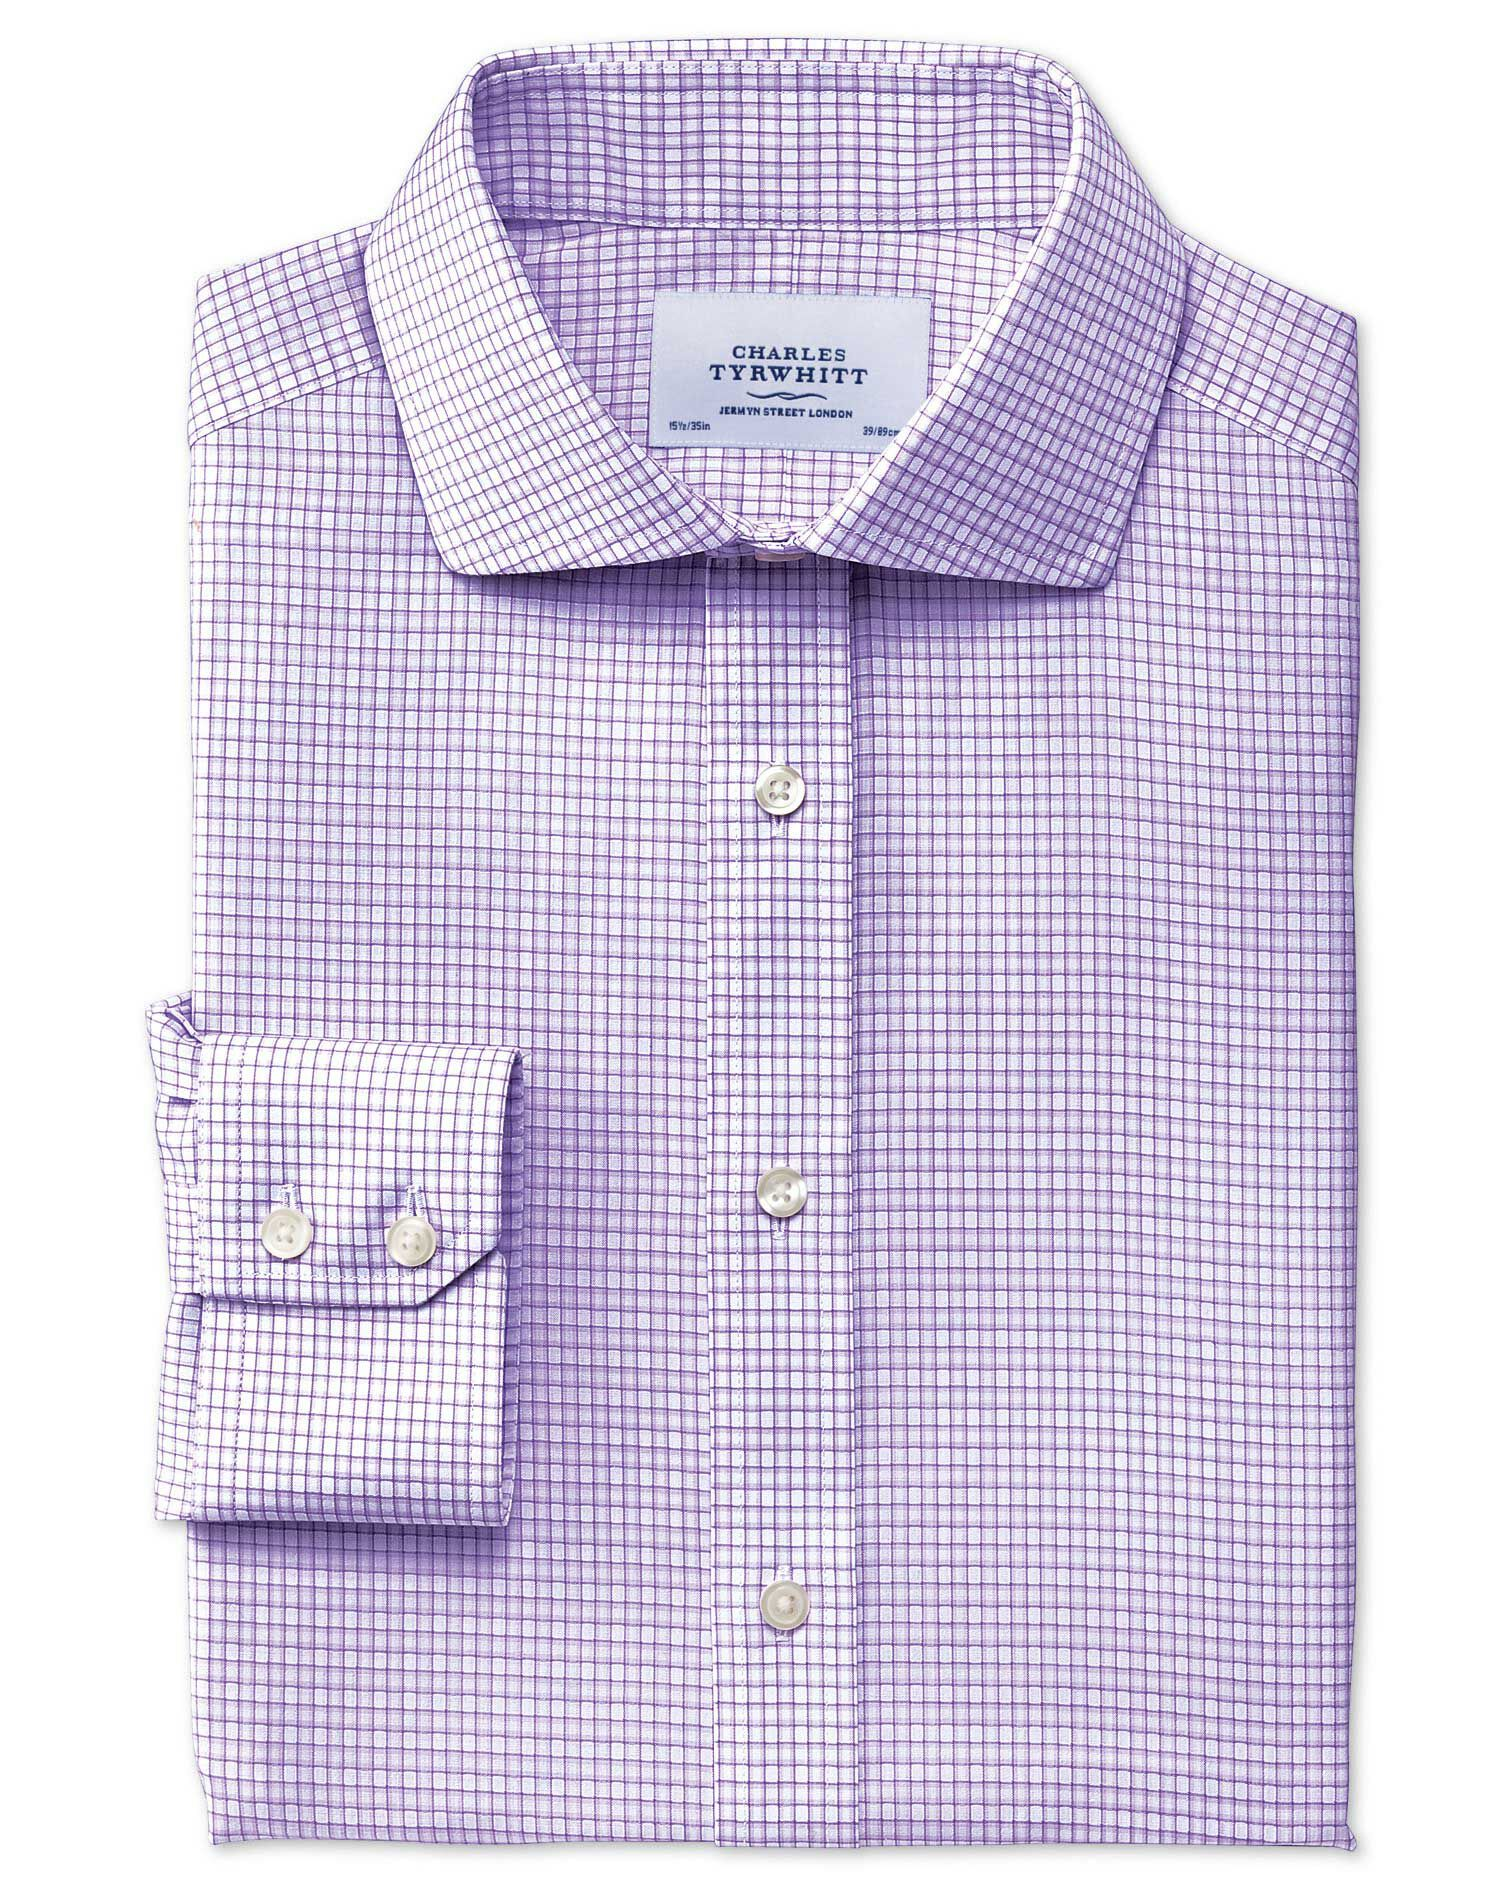 Extra Slim Fit Cutaway Collar Non-Iron Dobby Check Lilac Cotton Formal Shirt Single Cuff Size 16.5/3